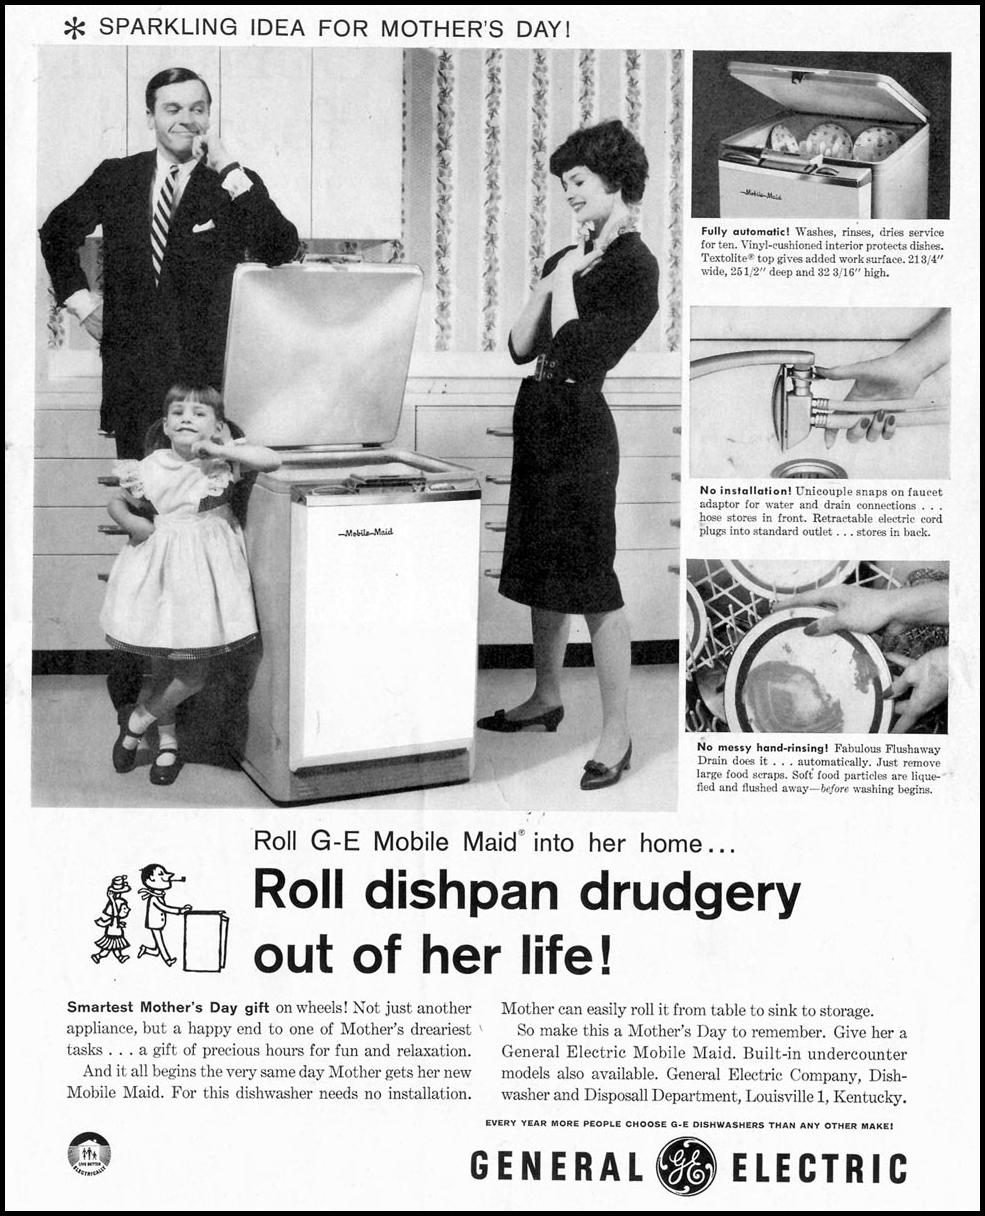 G. E. MOBILE MAID DISHWASHER SATURDAY EVENING POST 05/02/1959